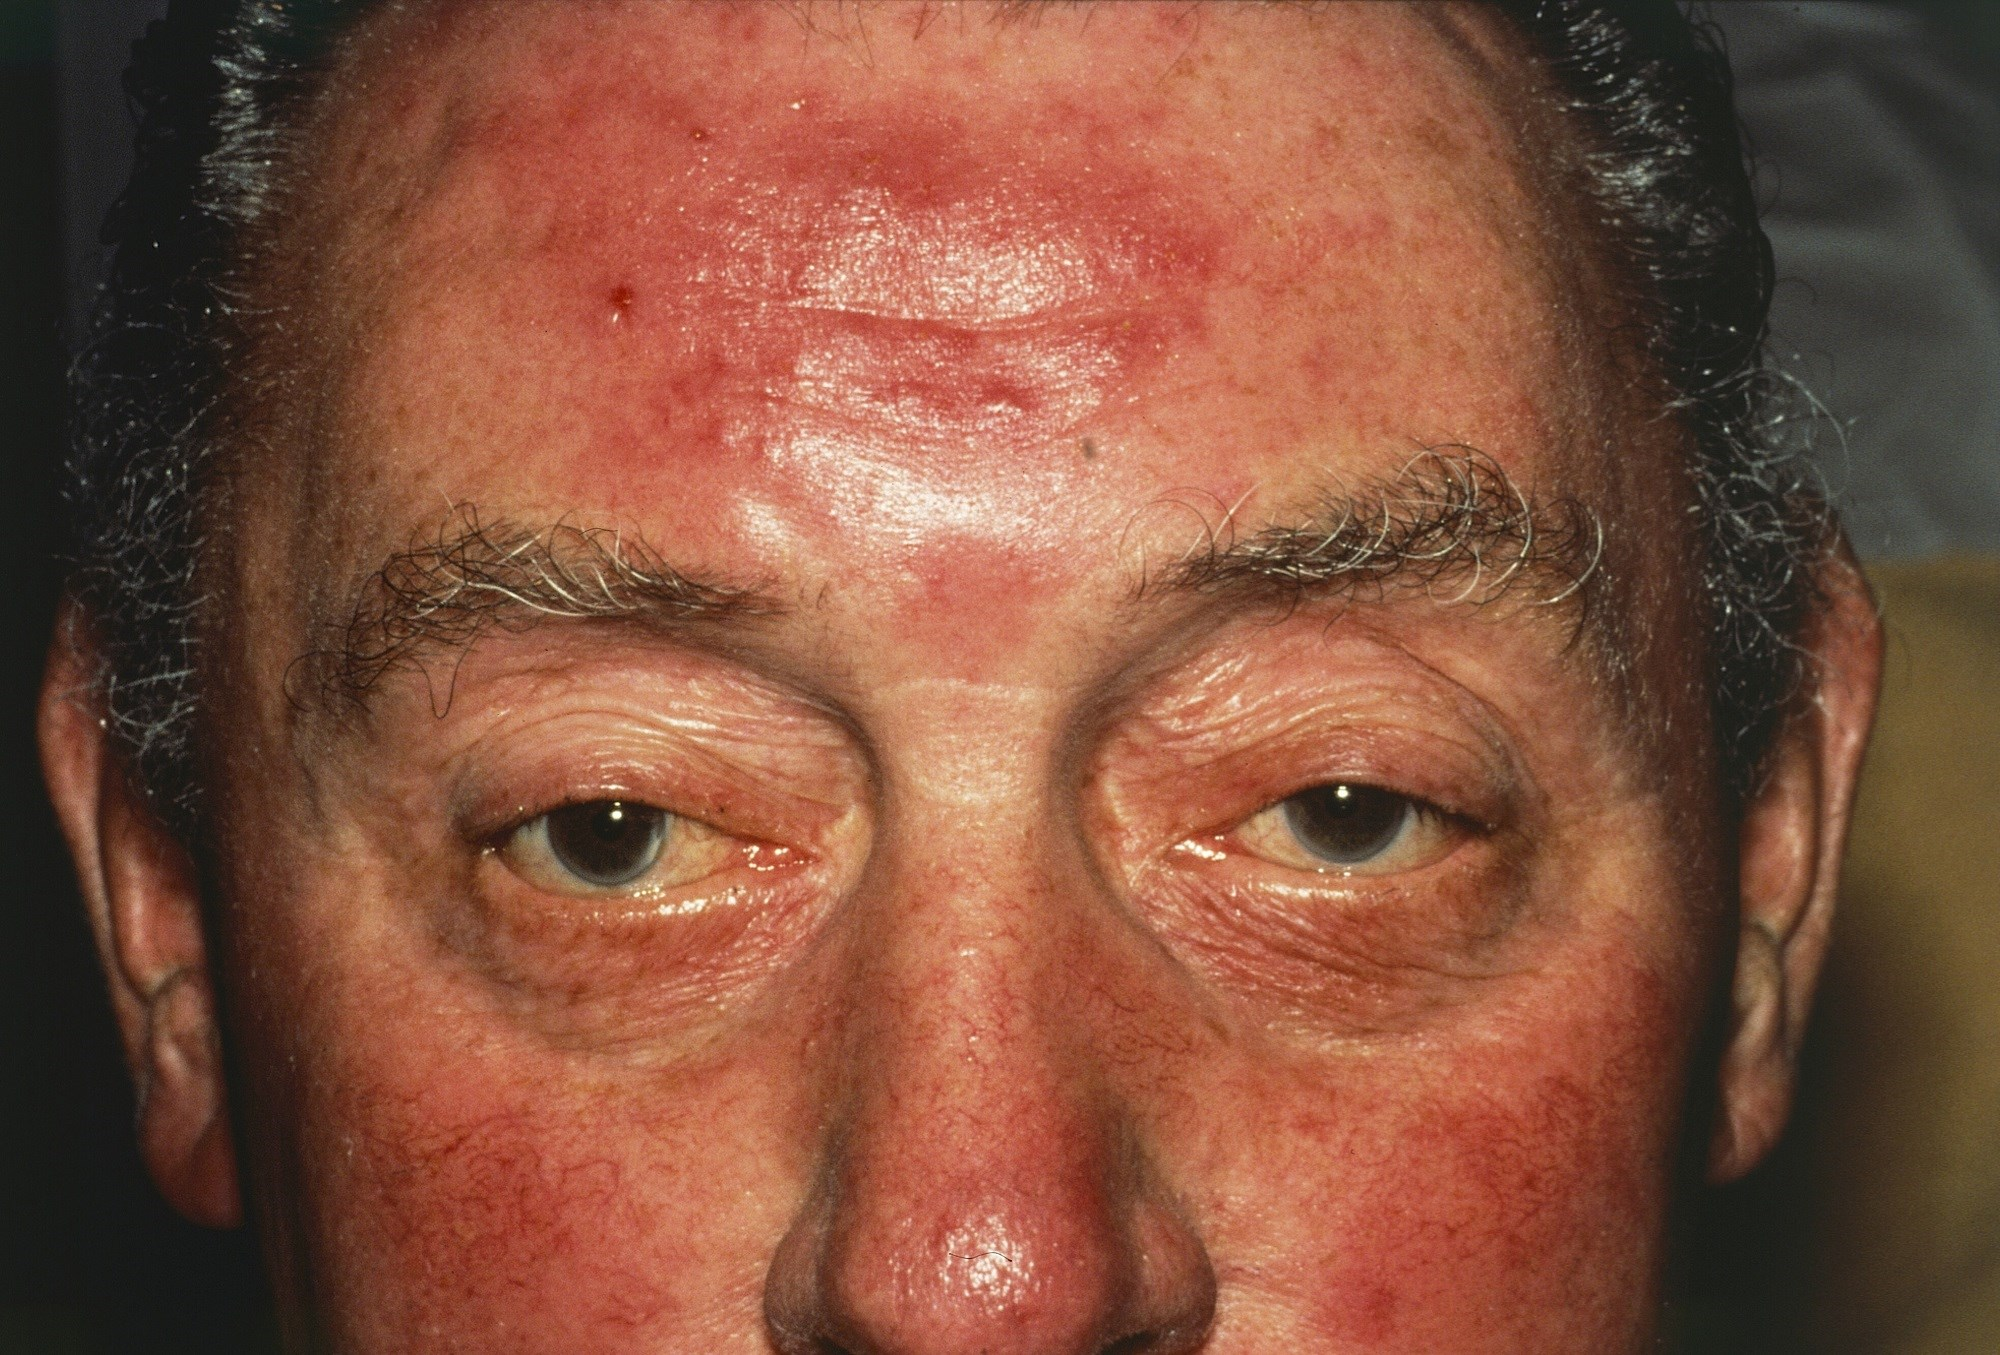 Clinical Improvement in Erythema of Rosacea With Oxymetazoline Therapy